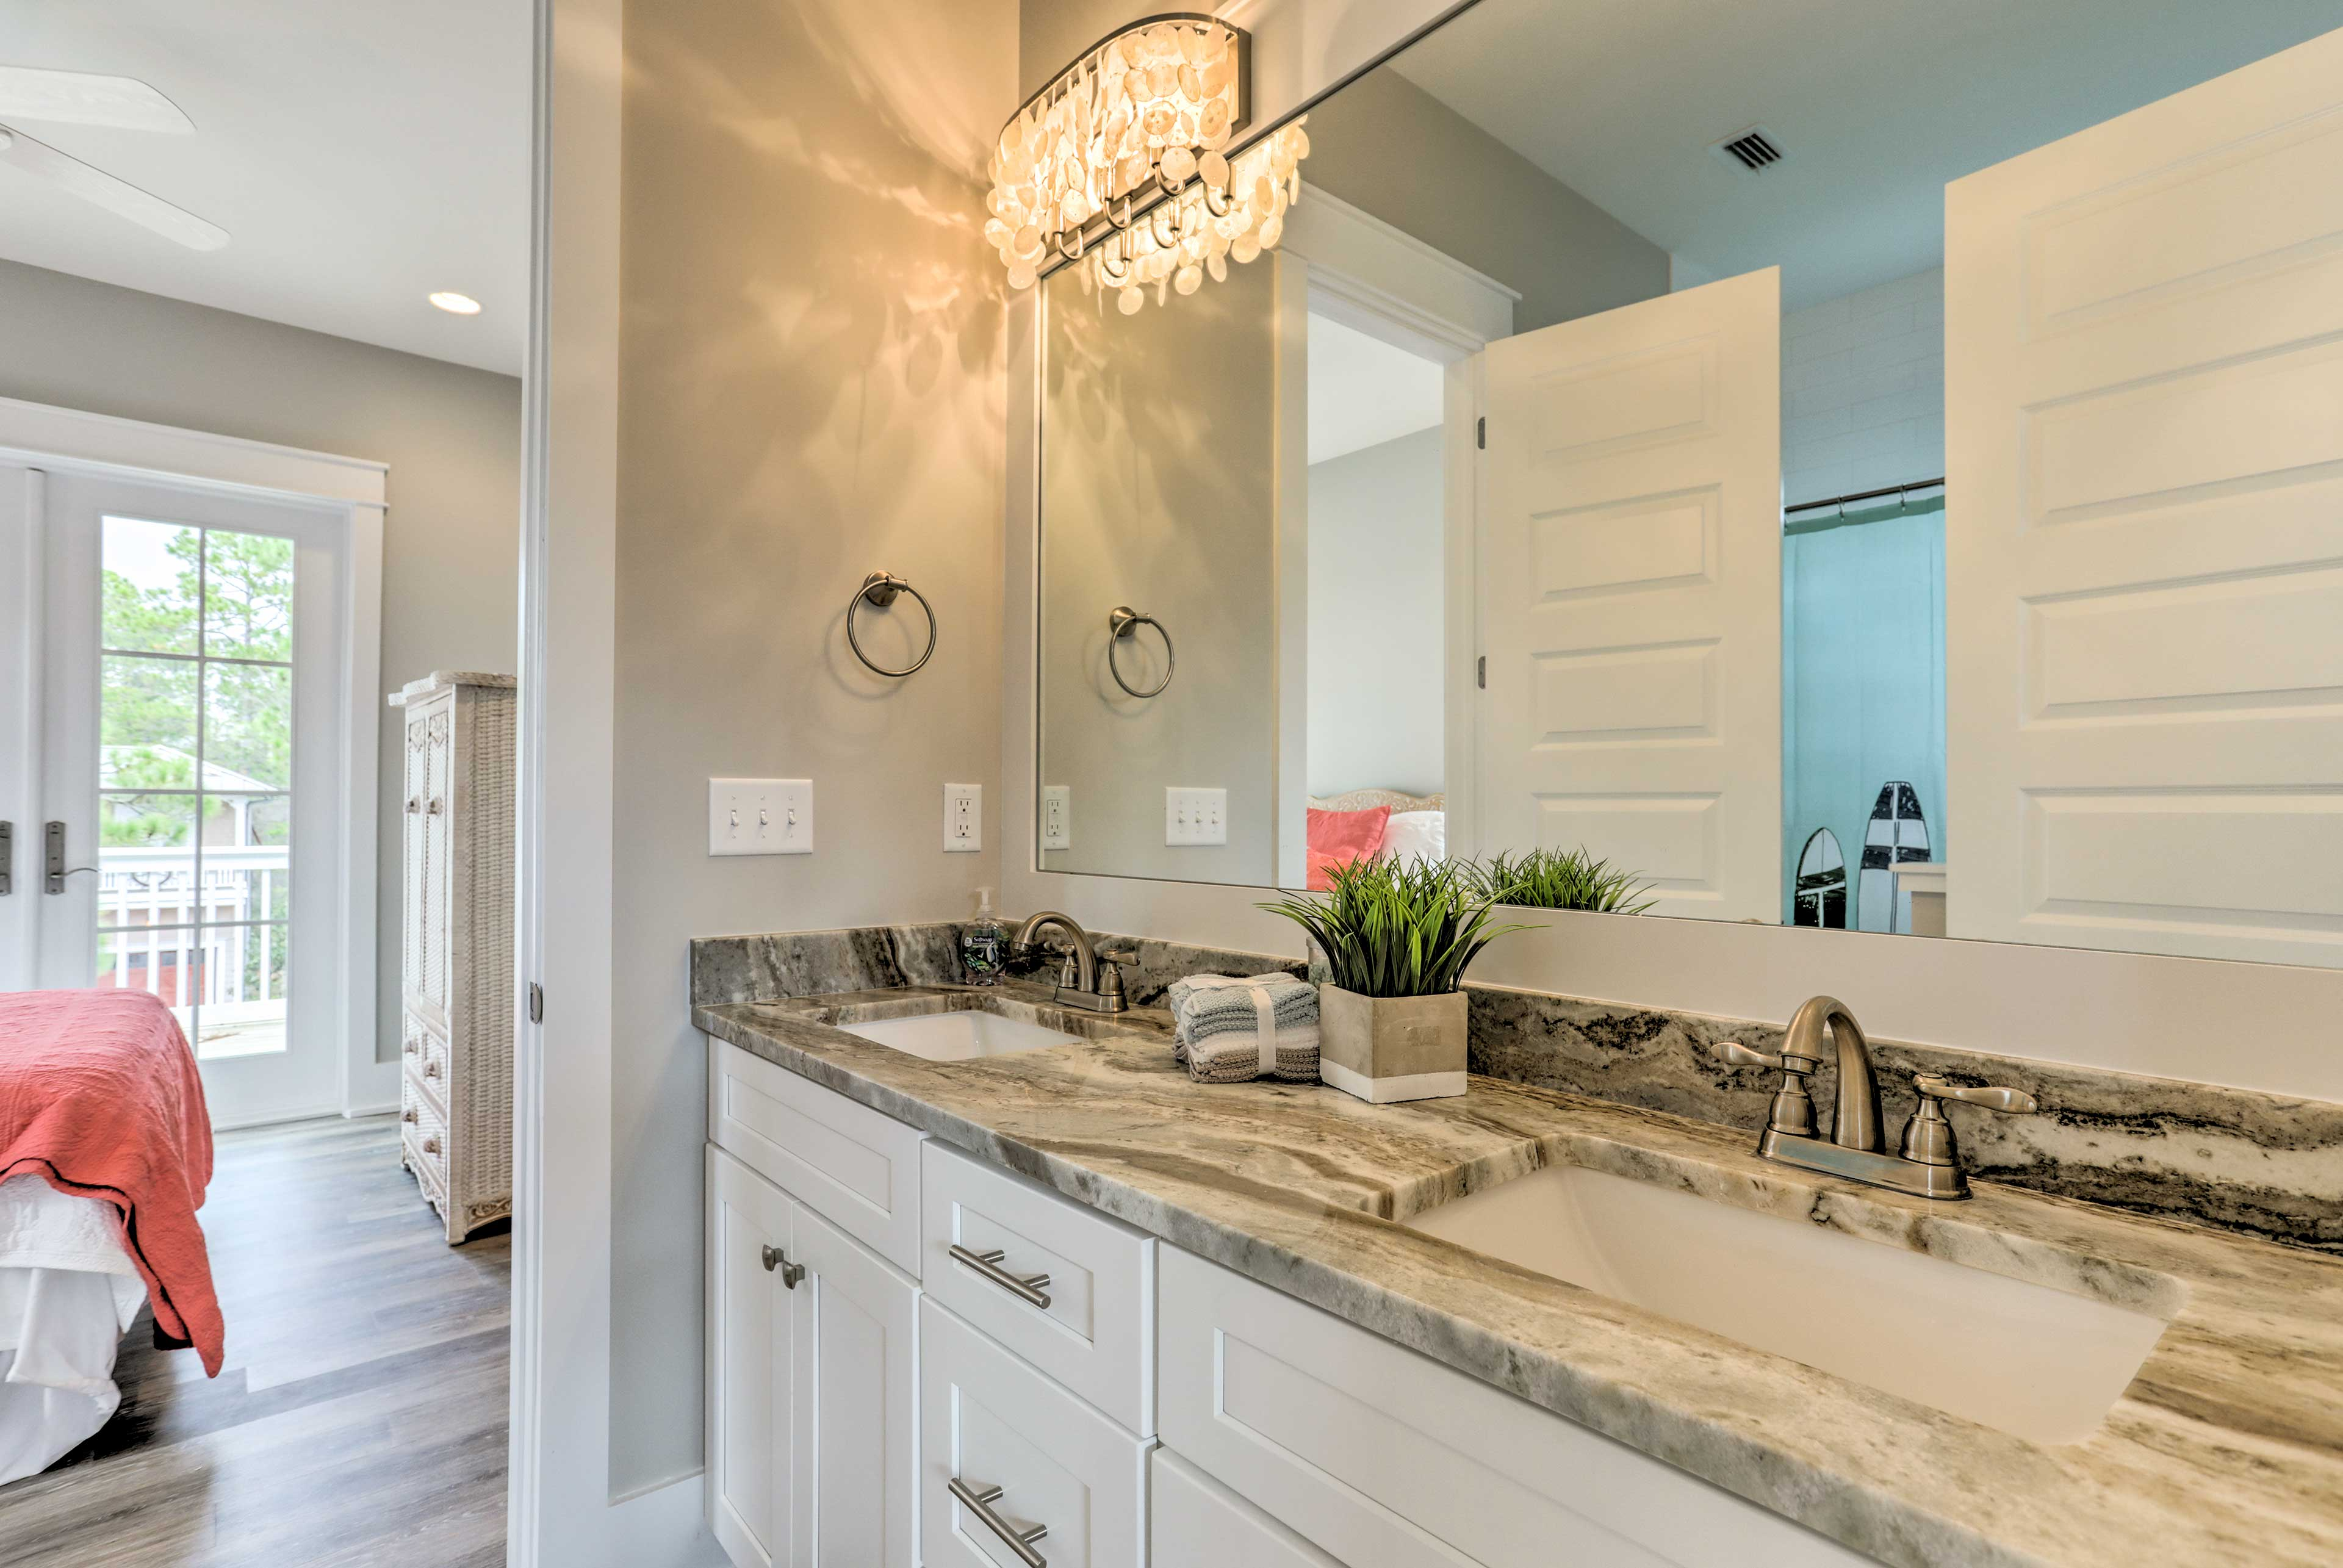 Effortlessly get ready each morning at this lavish double vanity.